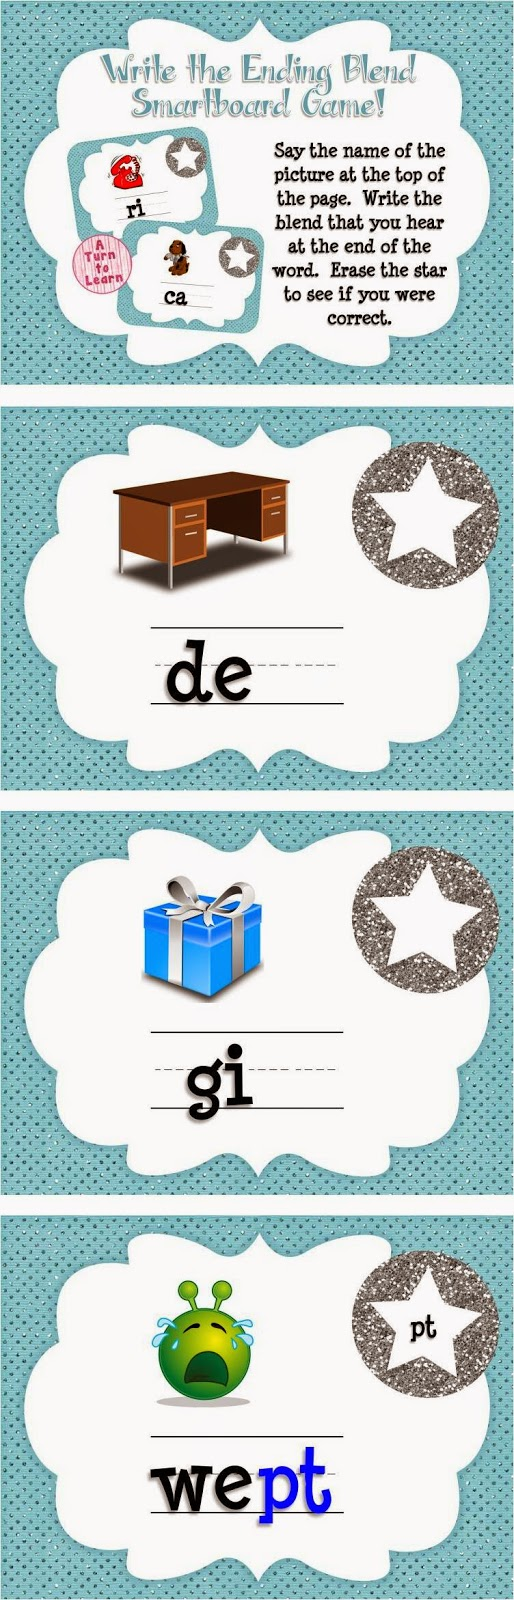 Ending Blends/CVCC Words Game for Smartboard or Promethean Board! And it's self checking!